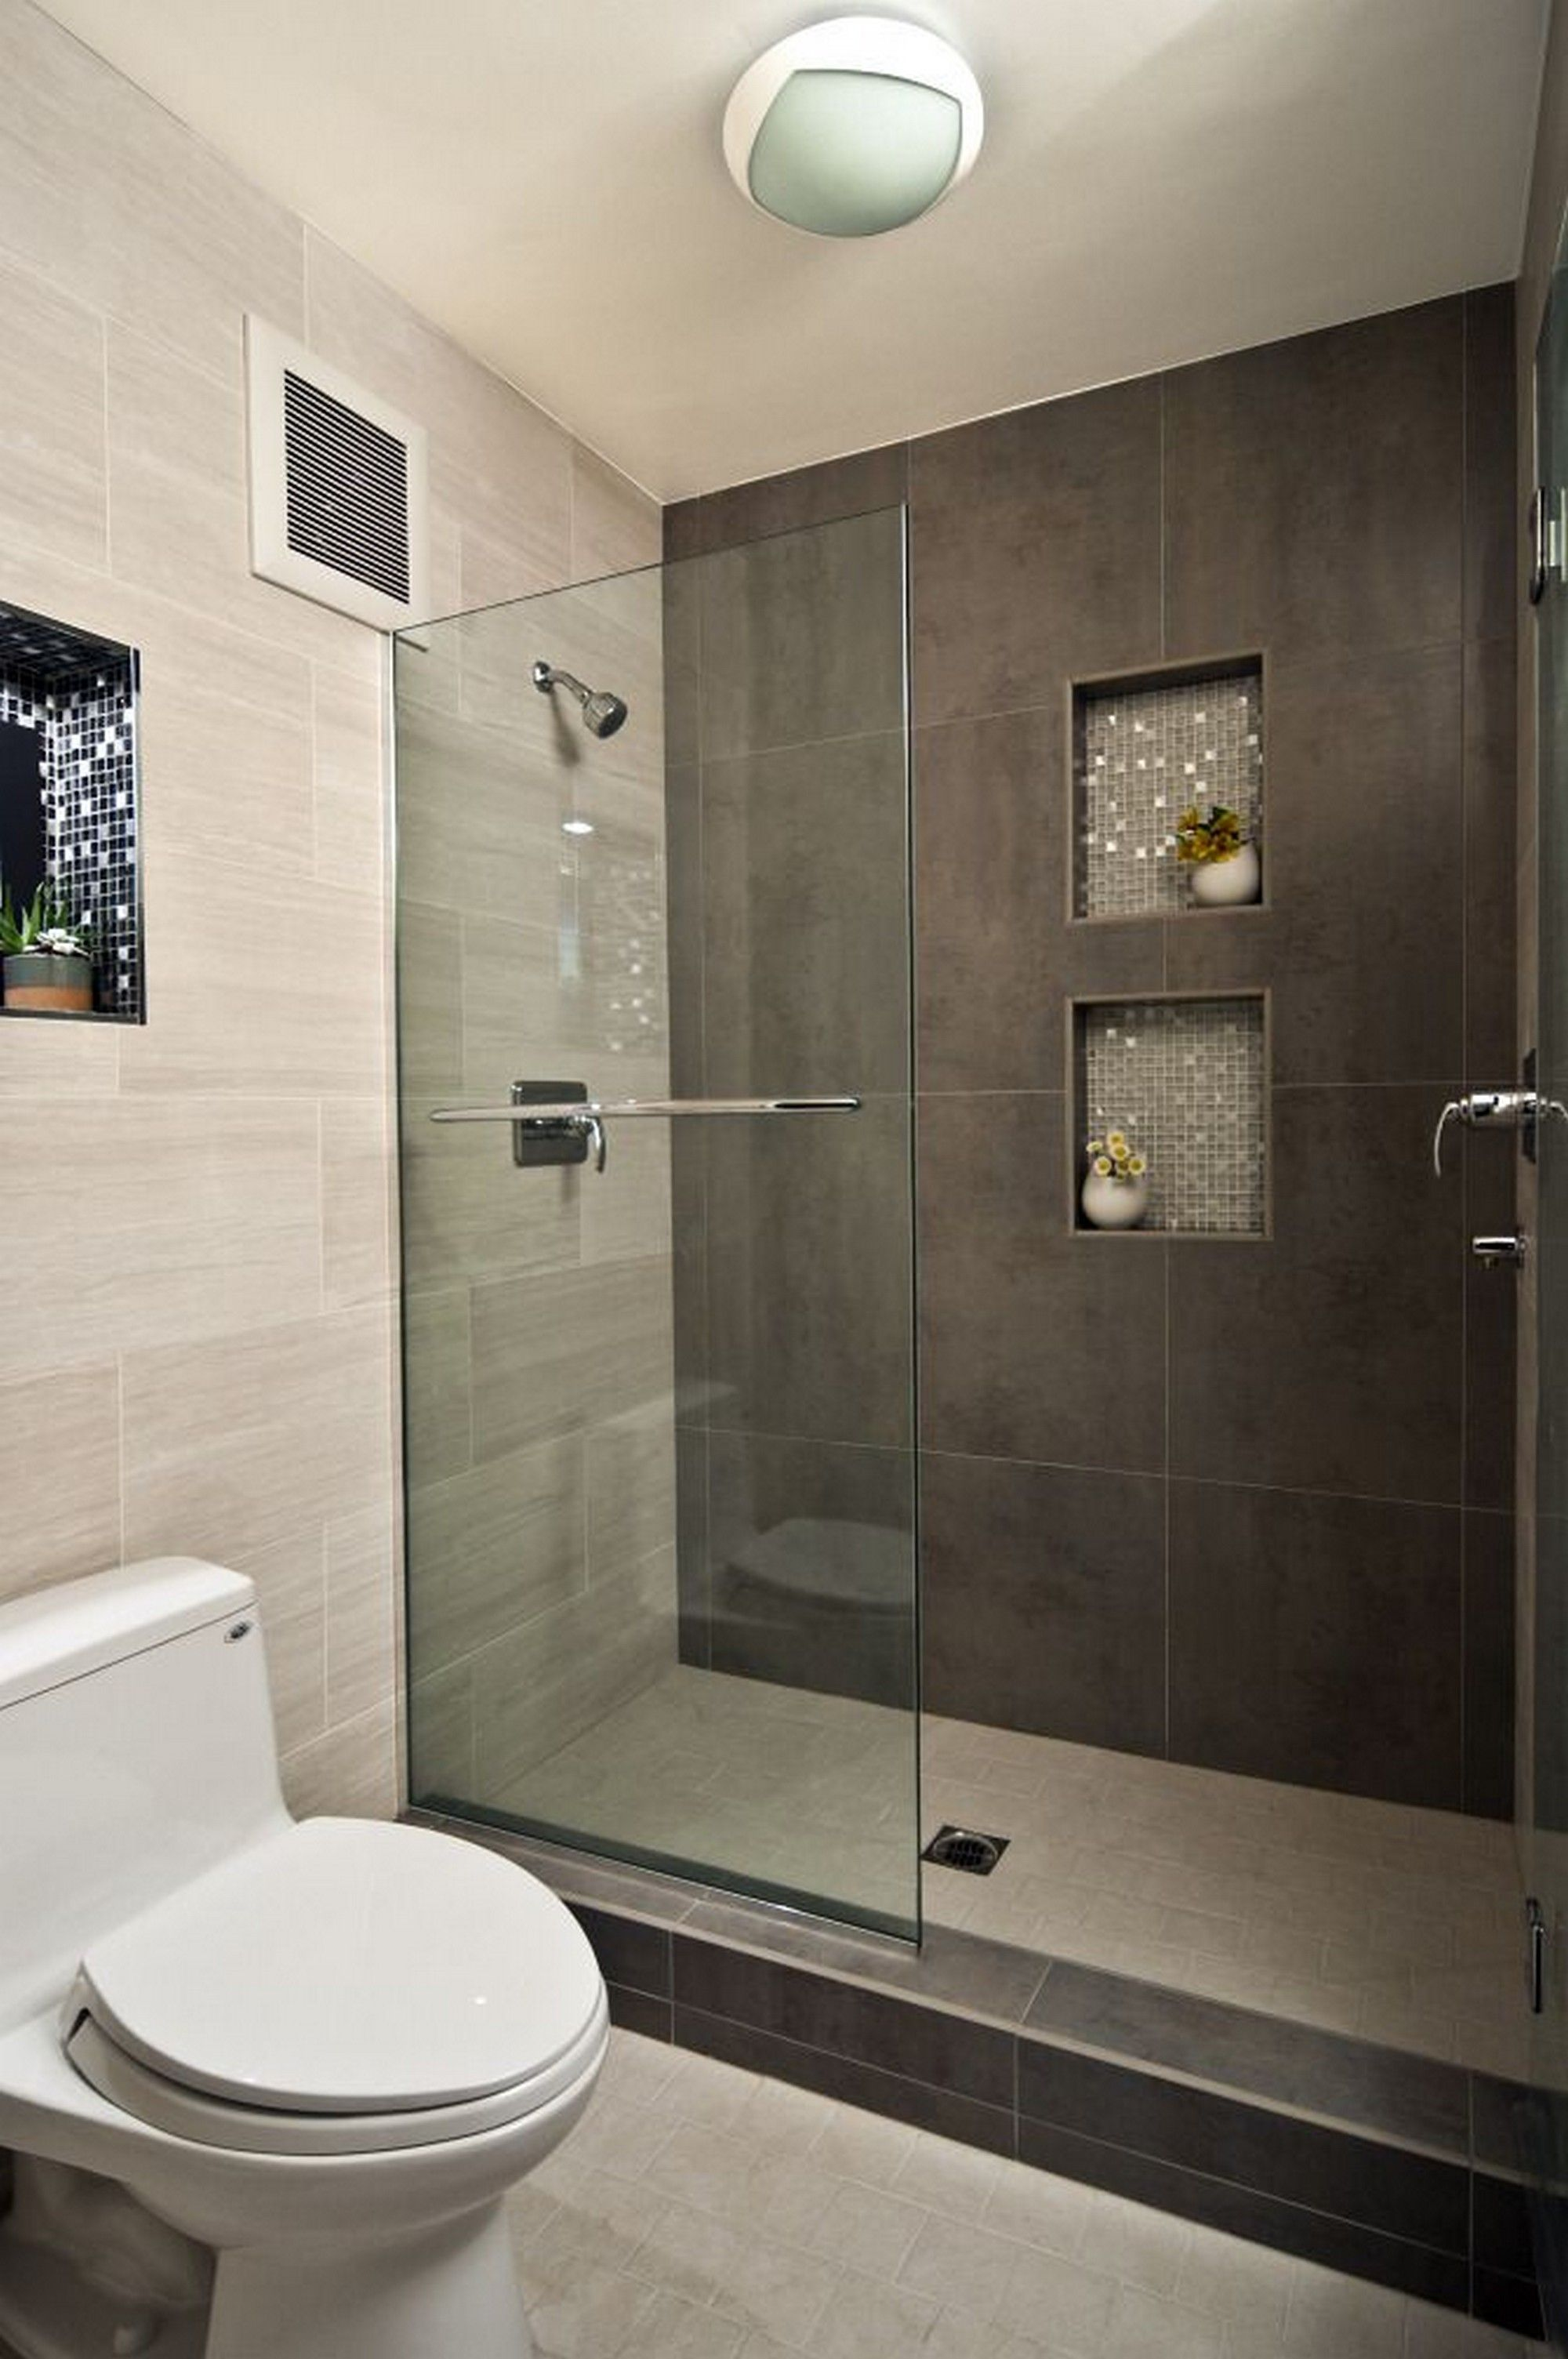 images of small bathrooms designs. Small-Bathroom-Ideas-with-Walk-in-Shower Images Of Small Bathrooms Designs S